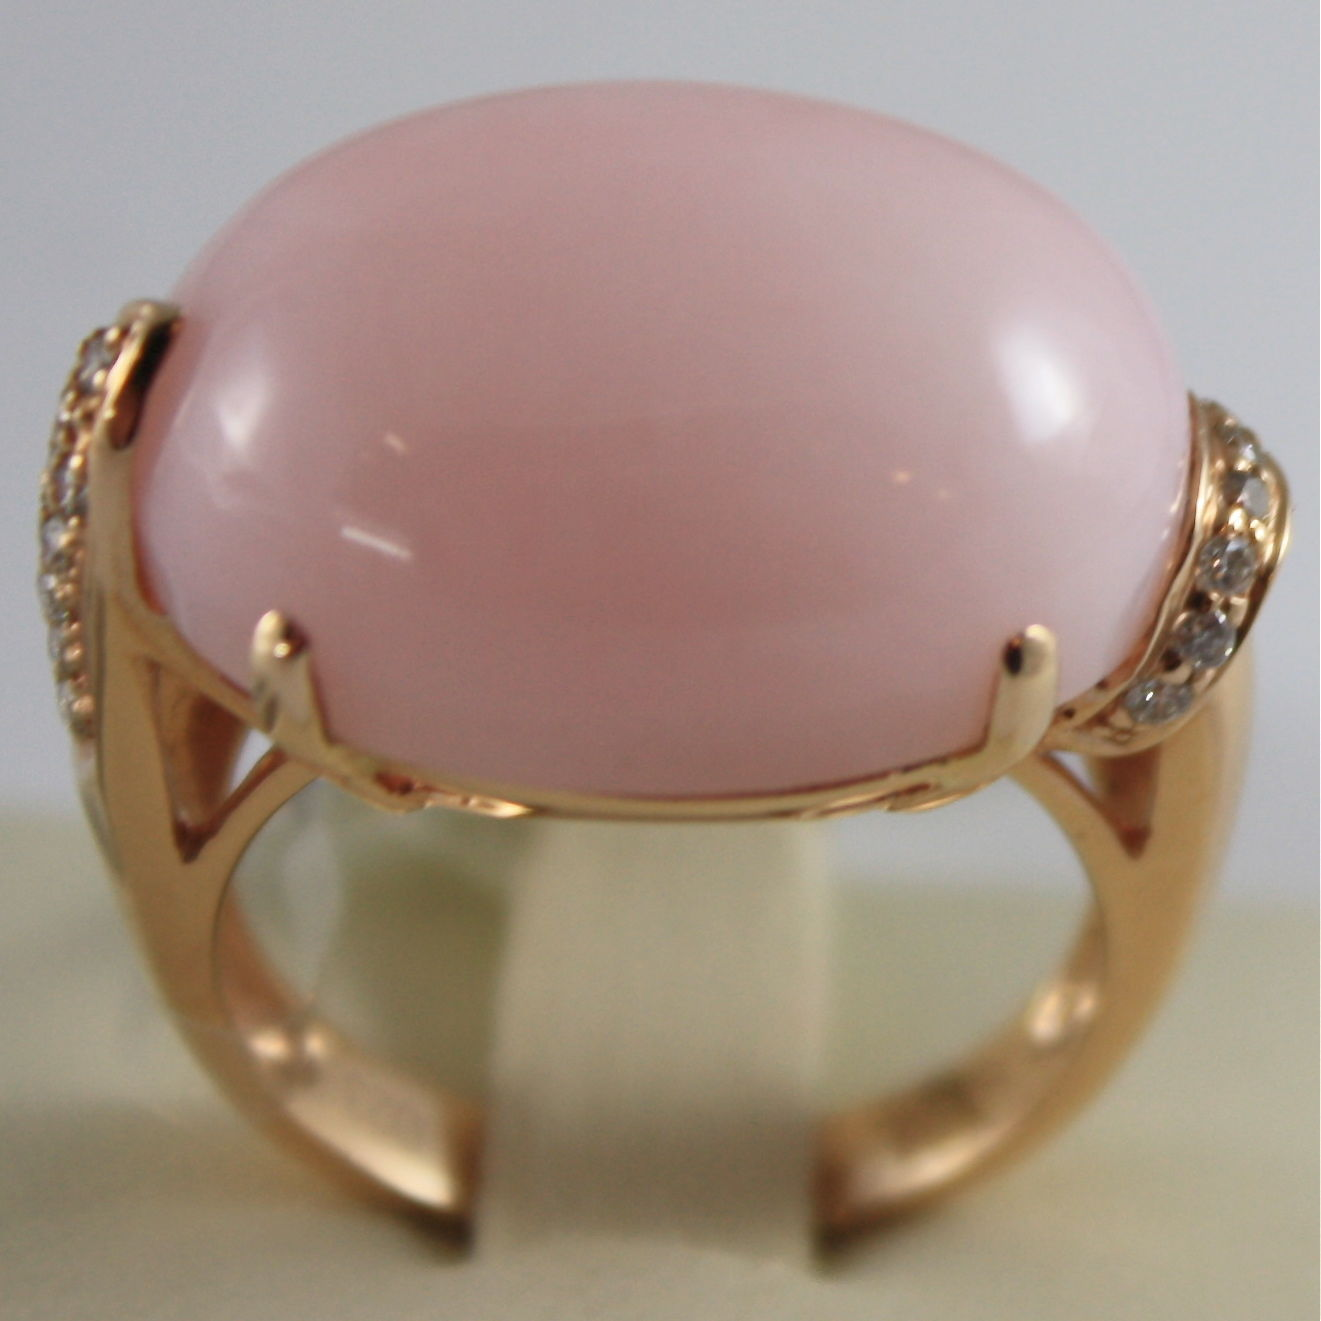 SOLID 18K ROSE GOLD RING WITH CABOCHON OPAL AND DIAMONDS CT 0,23, MADE IN ITALY